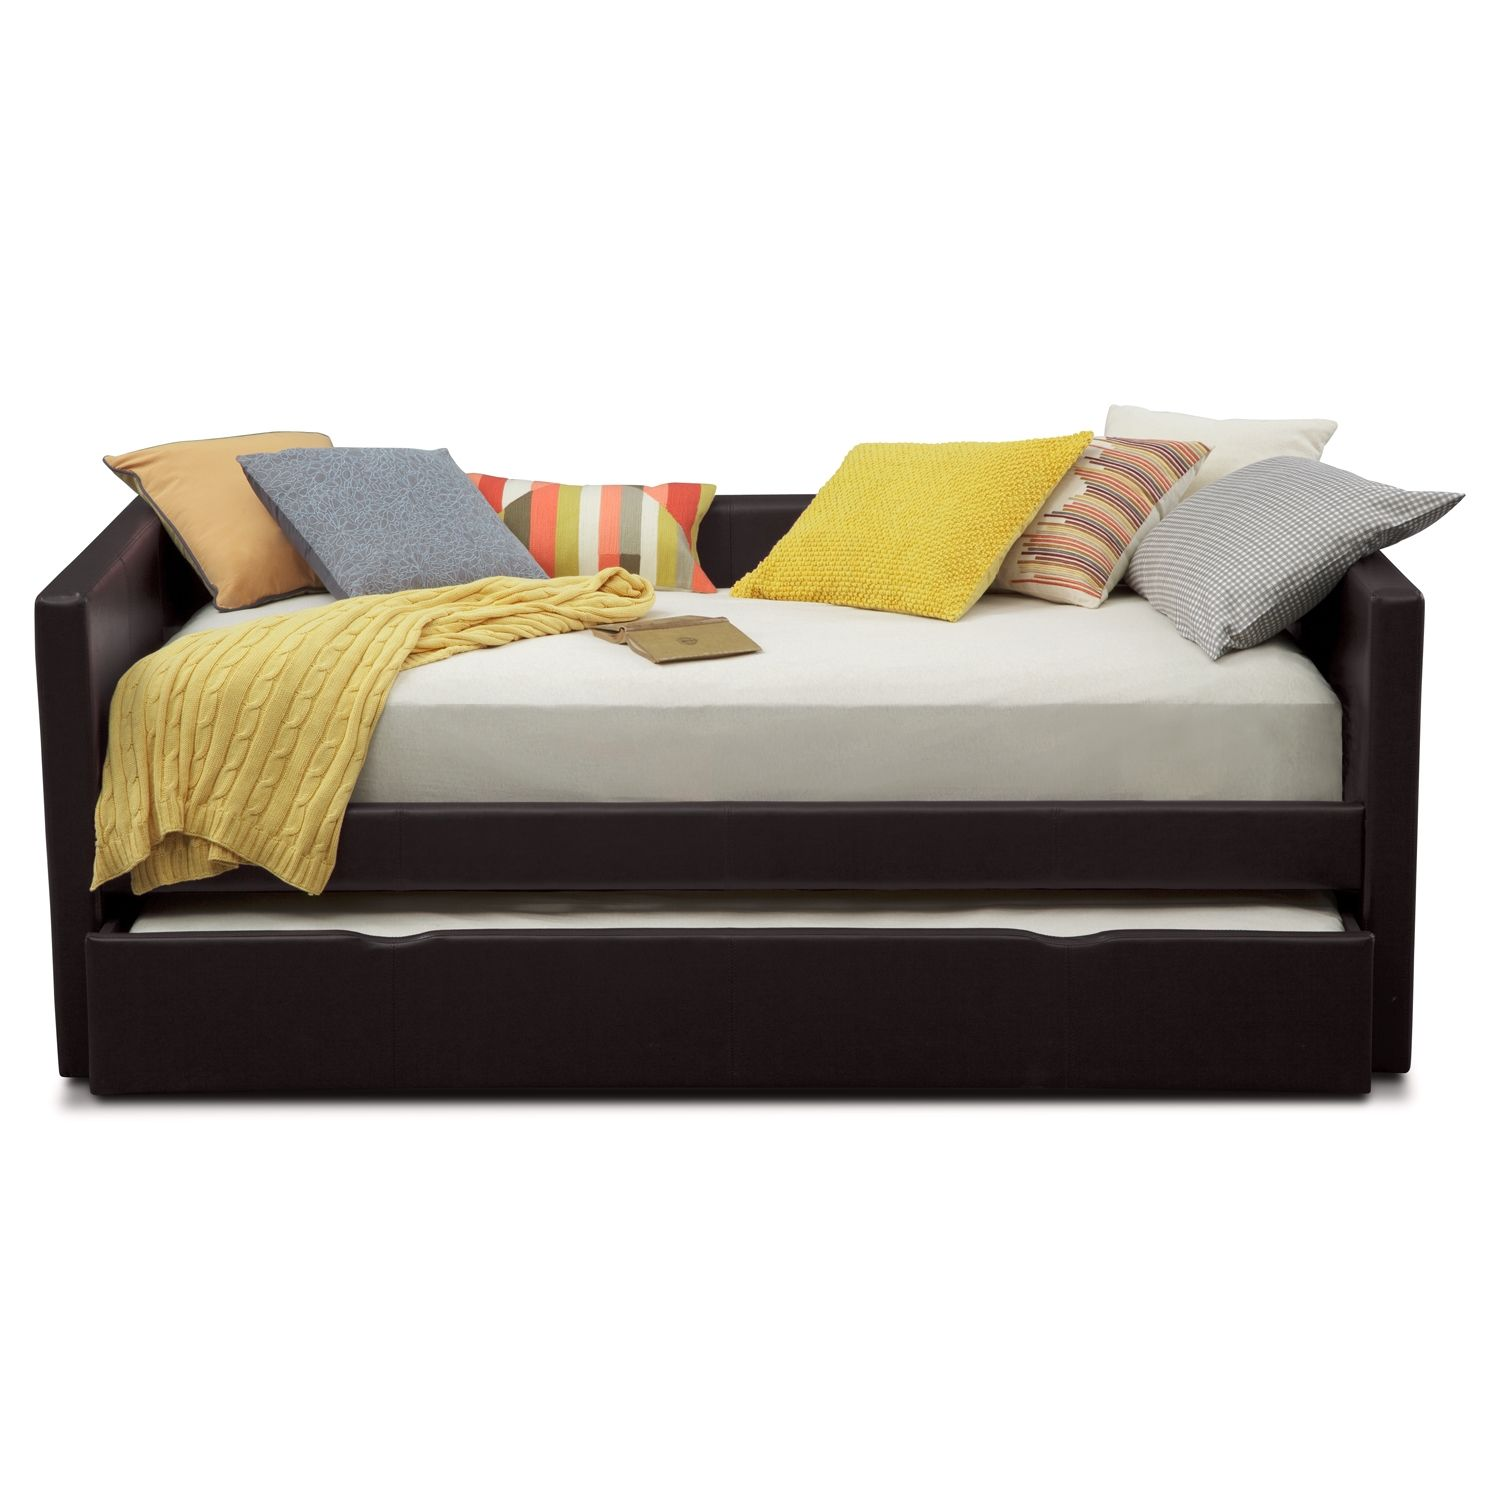 Daybed with trundle full size carey iii twin daybed with trundle  value city furniture